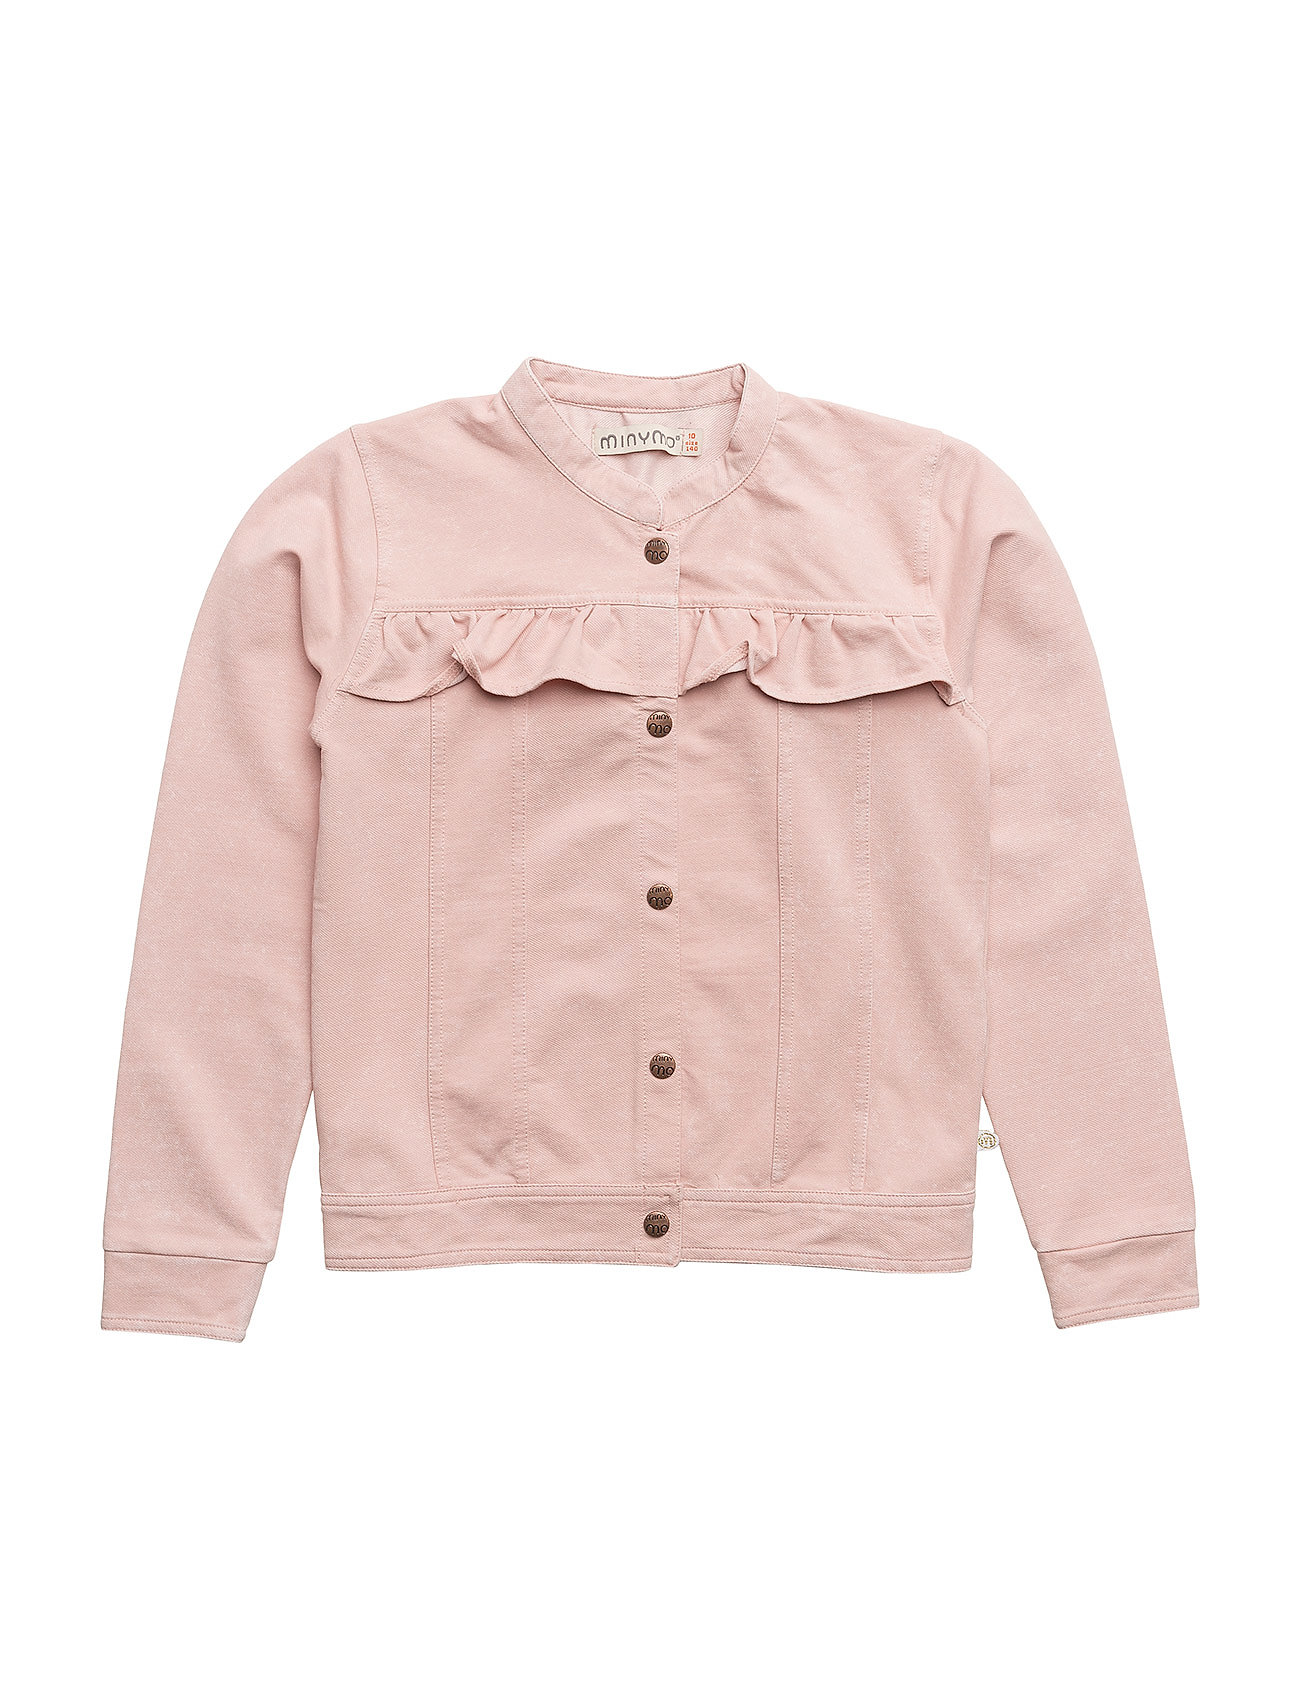 Minymo Jacket knit denim - ROSE CLOUD